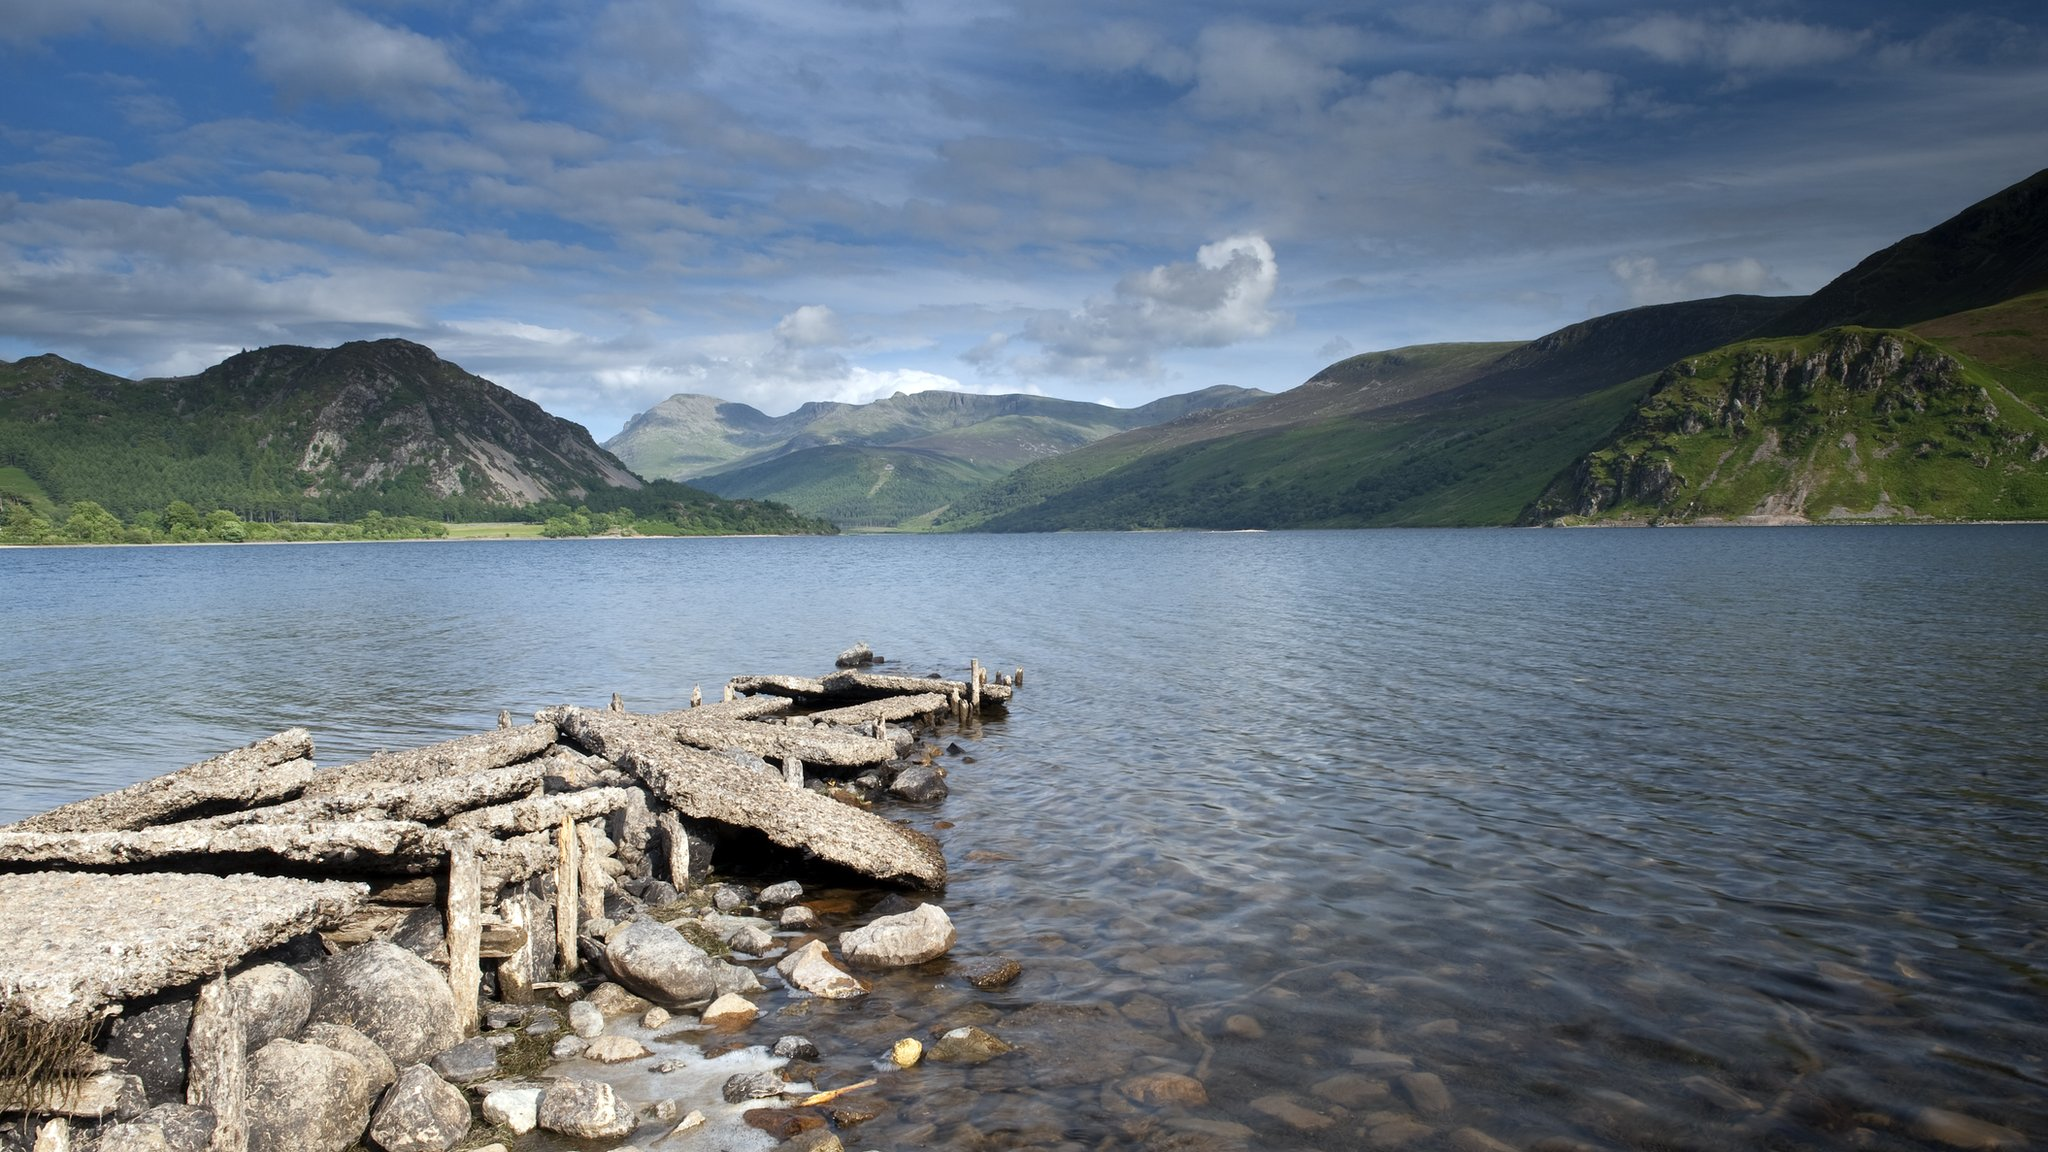 United Utilities wants more water from Lake District